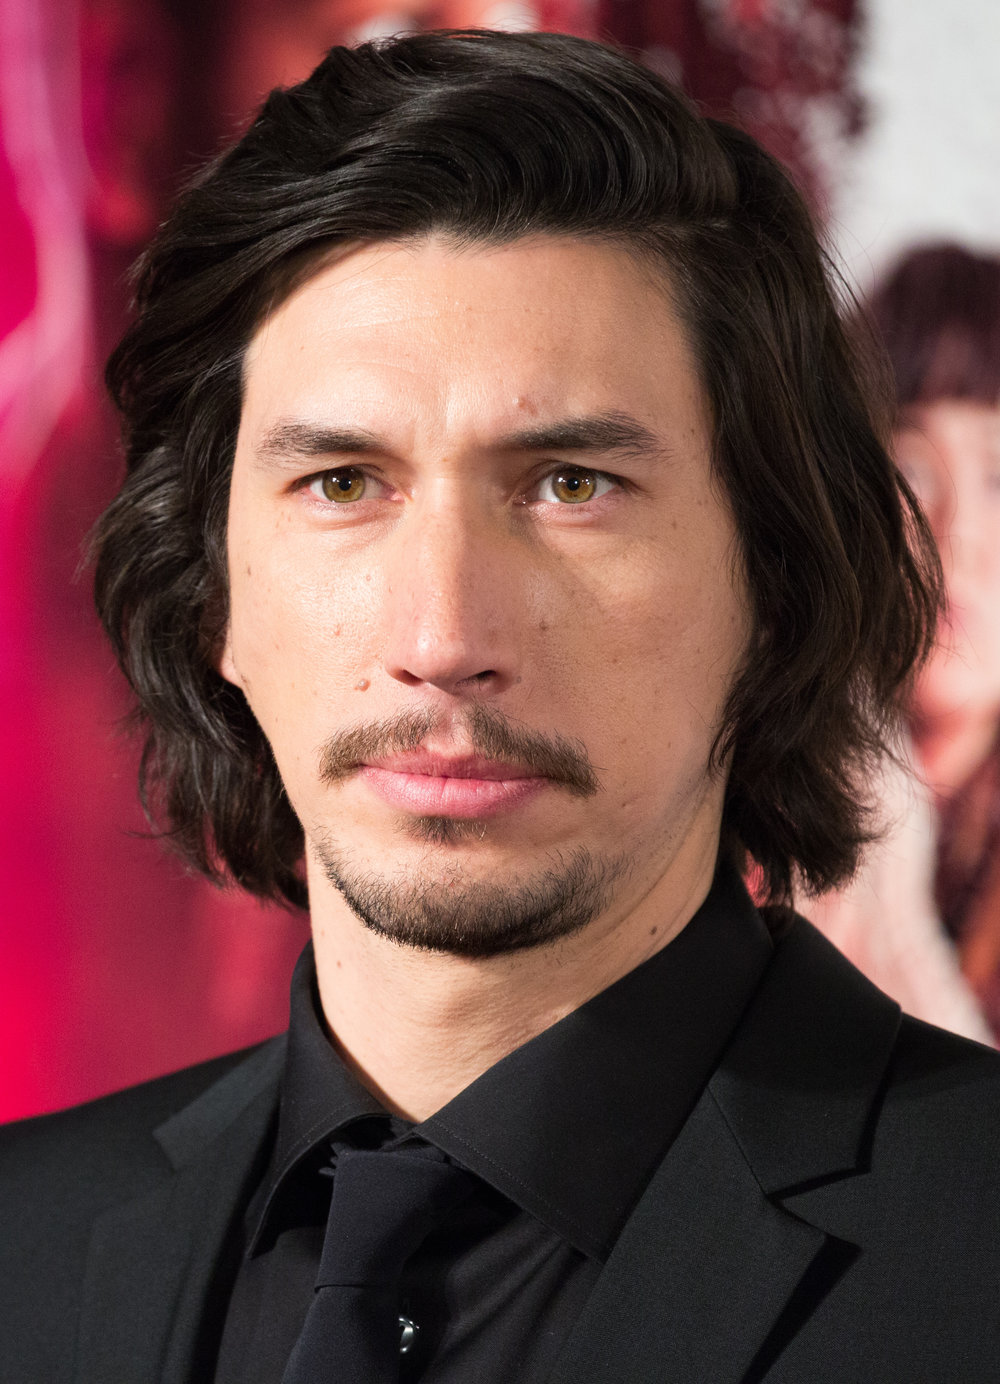 Star_Wars-_The_Last_Jedi_Japan_Premiere_Red_Carpet-_Adam_Driver_(27163437599)_(cropped).jpg